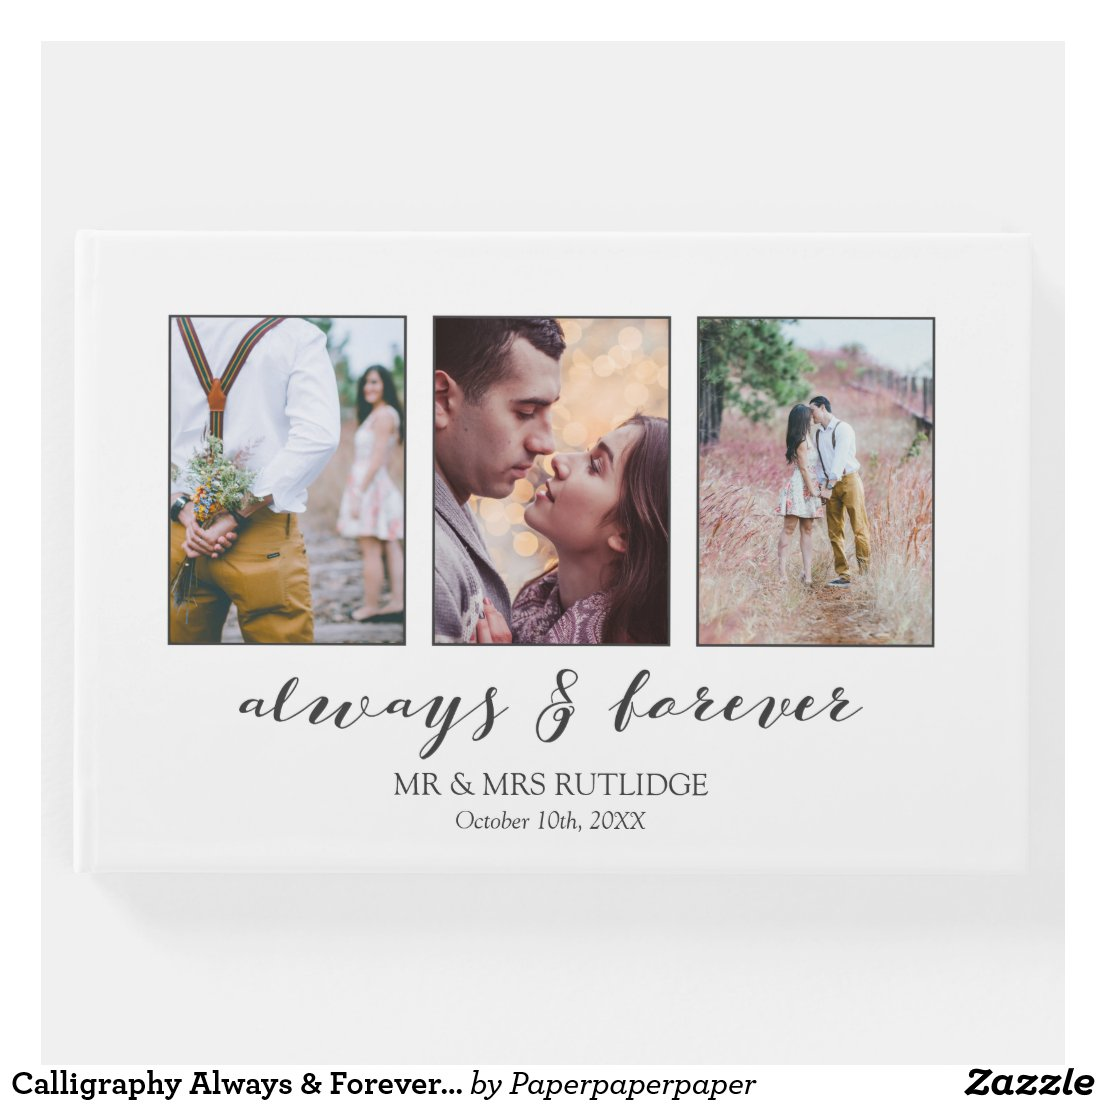 Calligraphy Always & Forever Photo Collage Wedding Guest Book